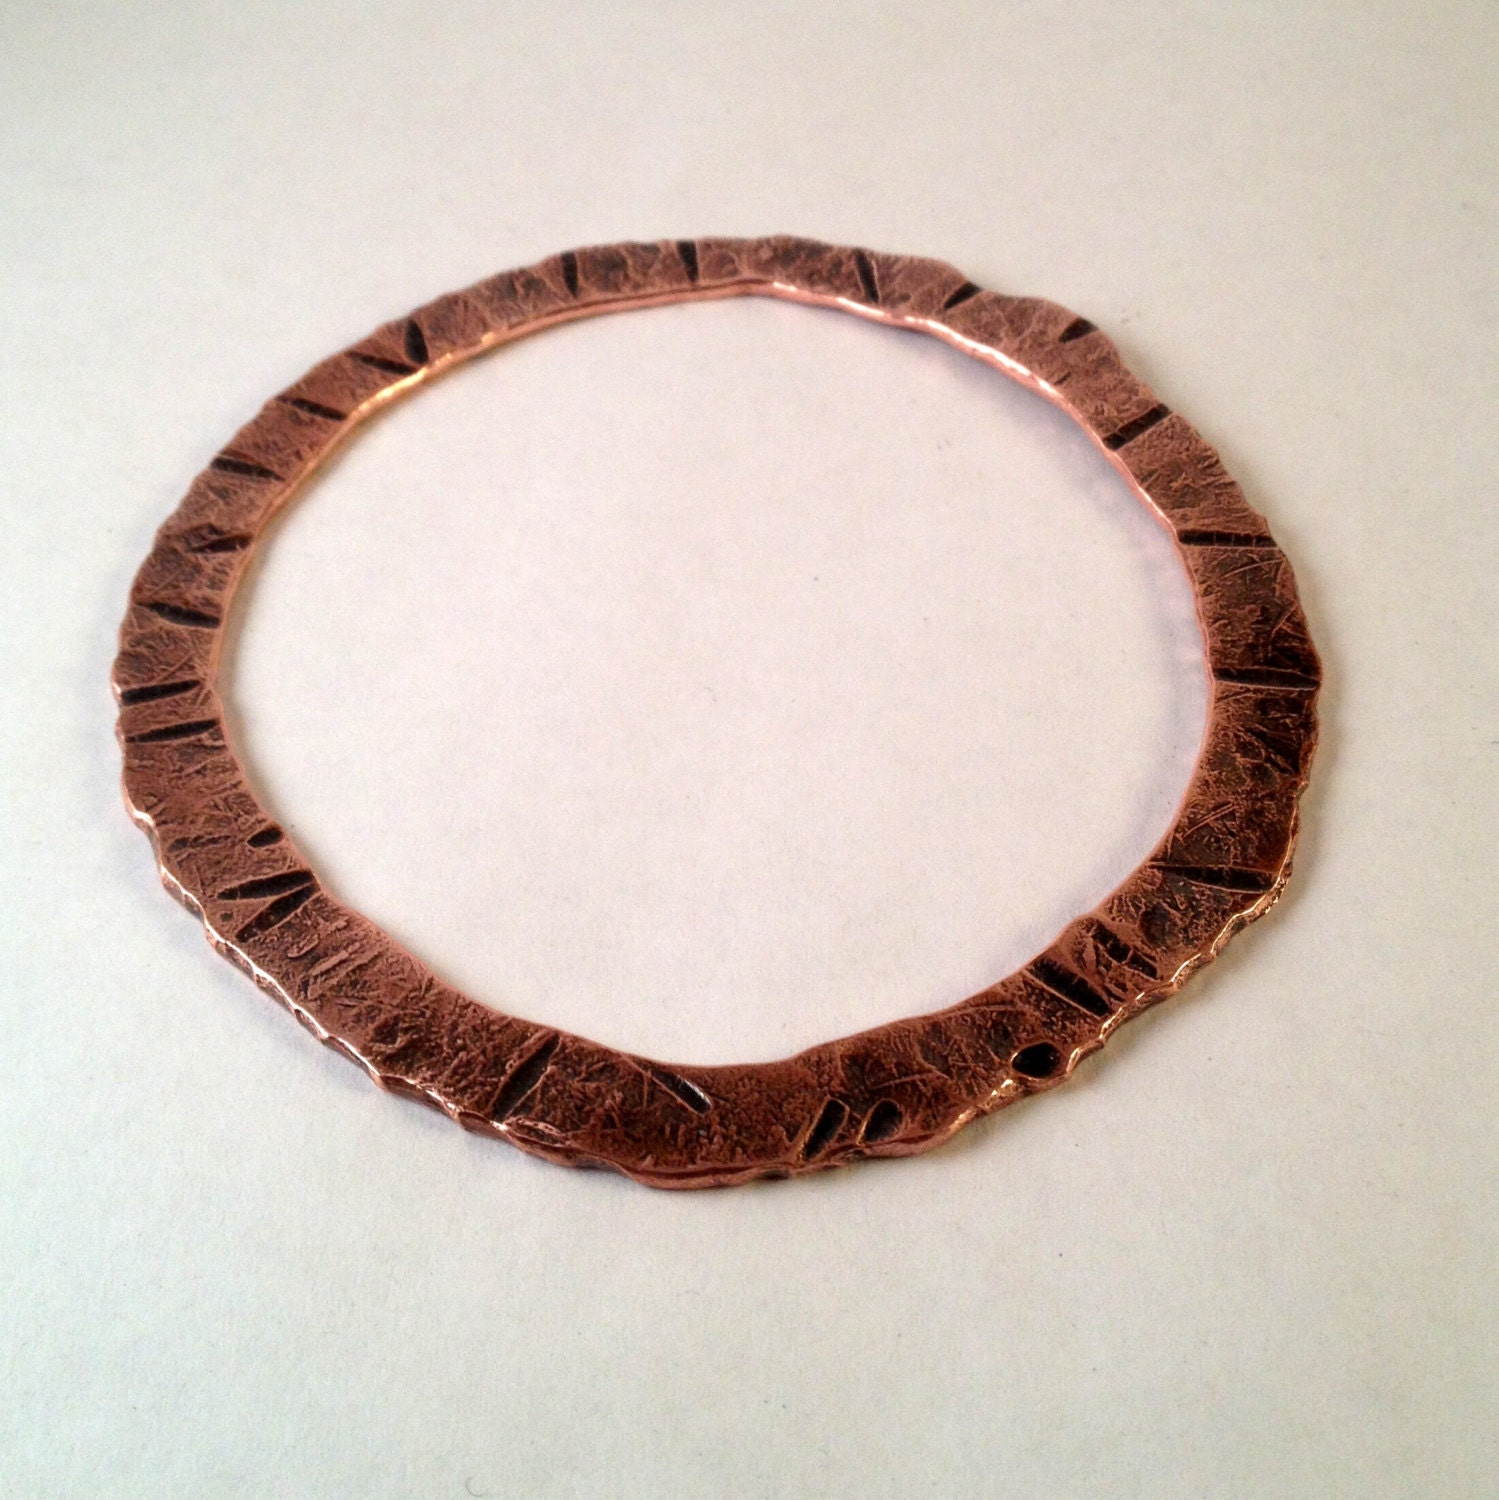 Primitive forged copper bangle bracelet